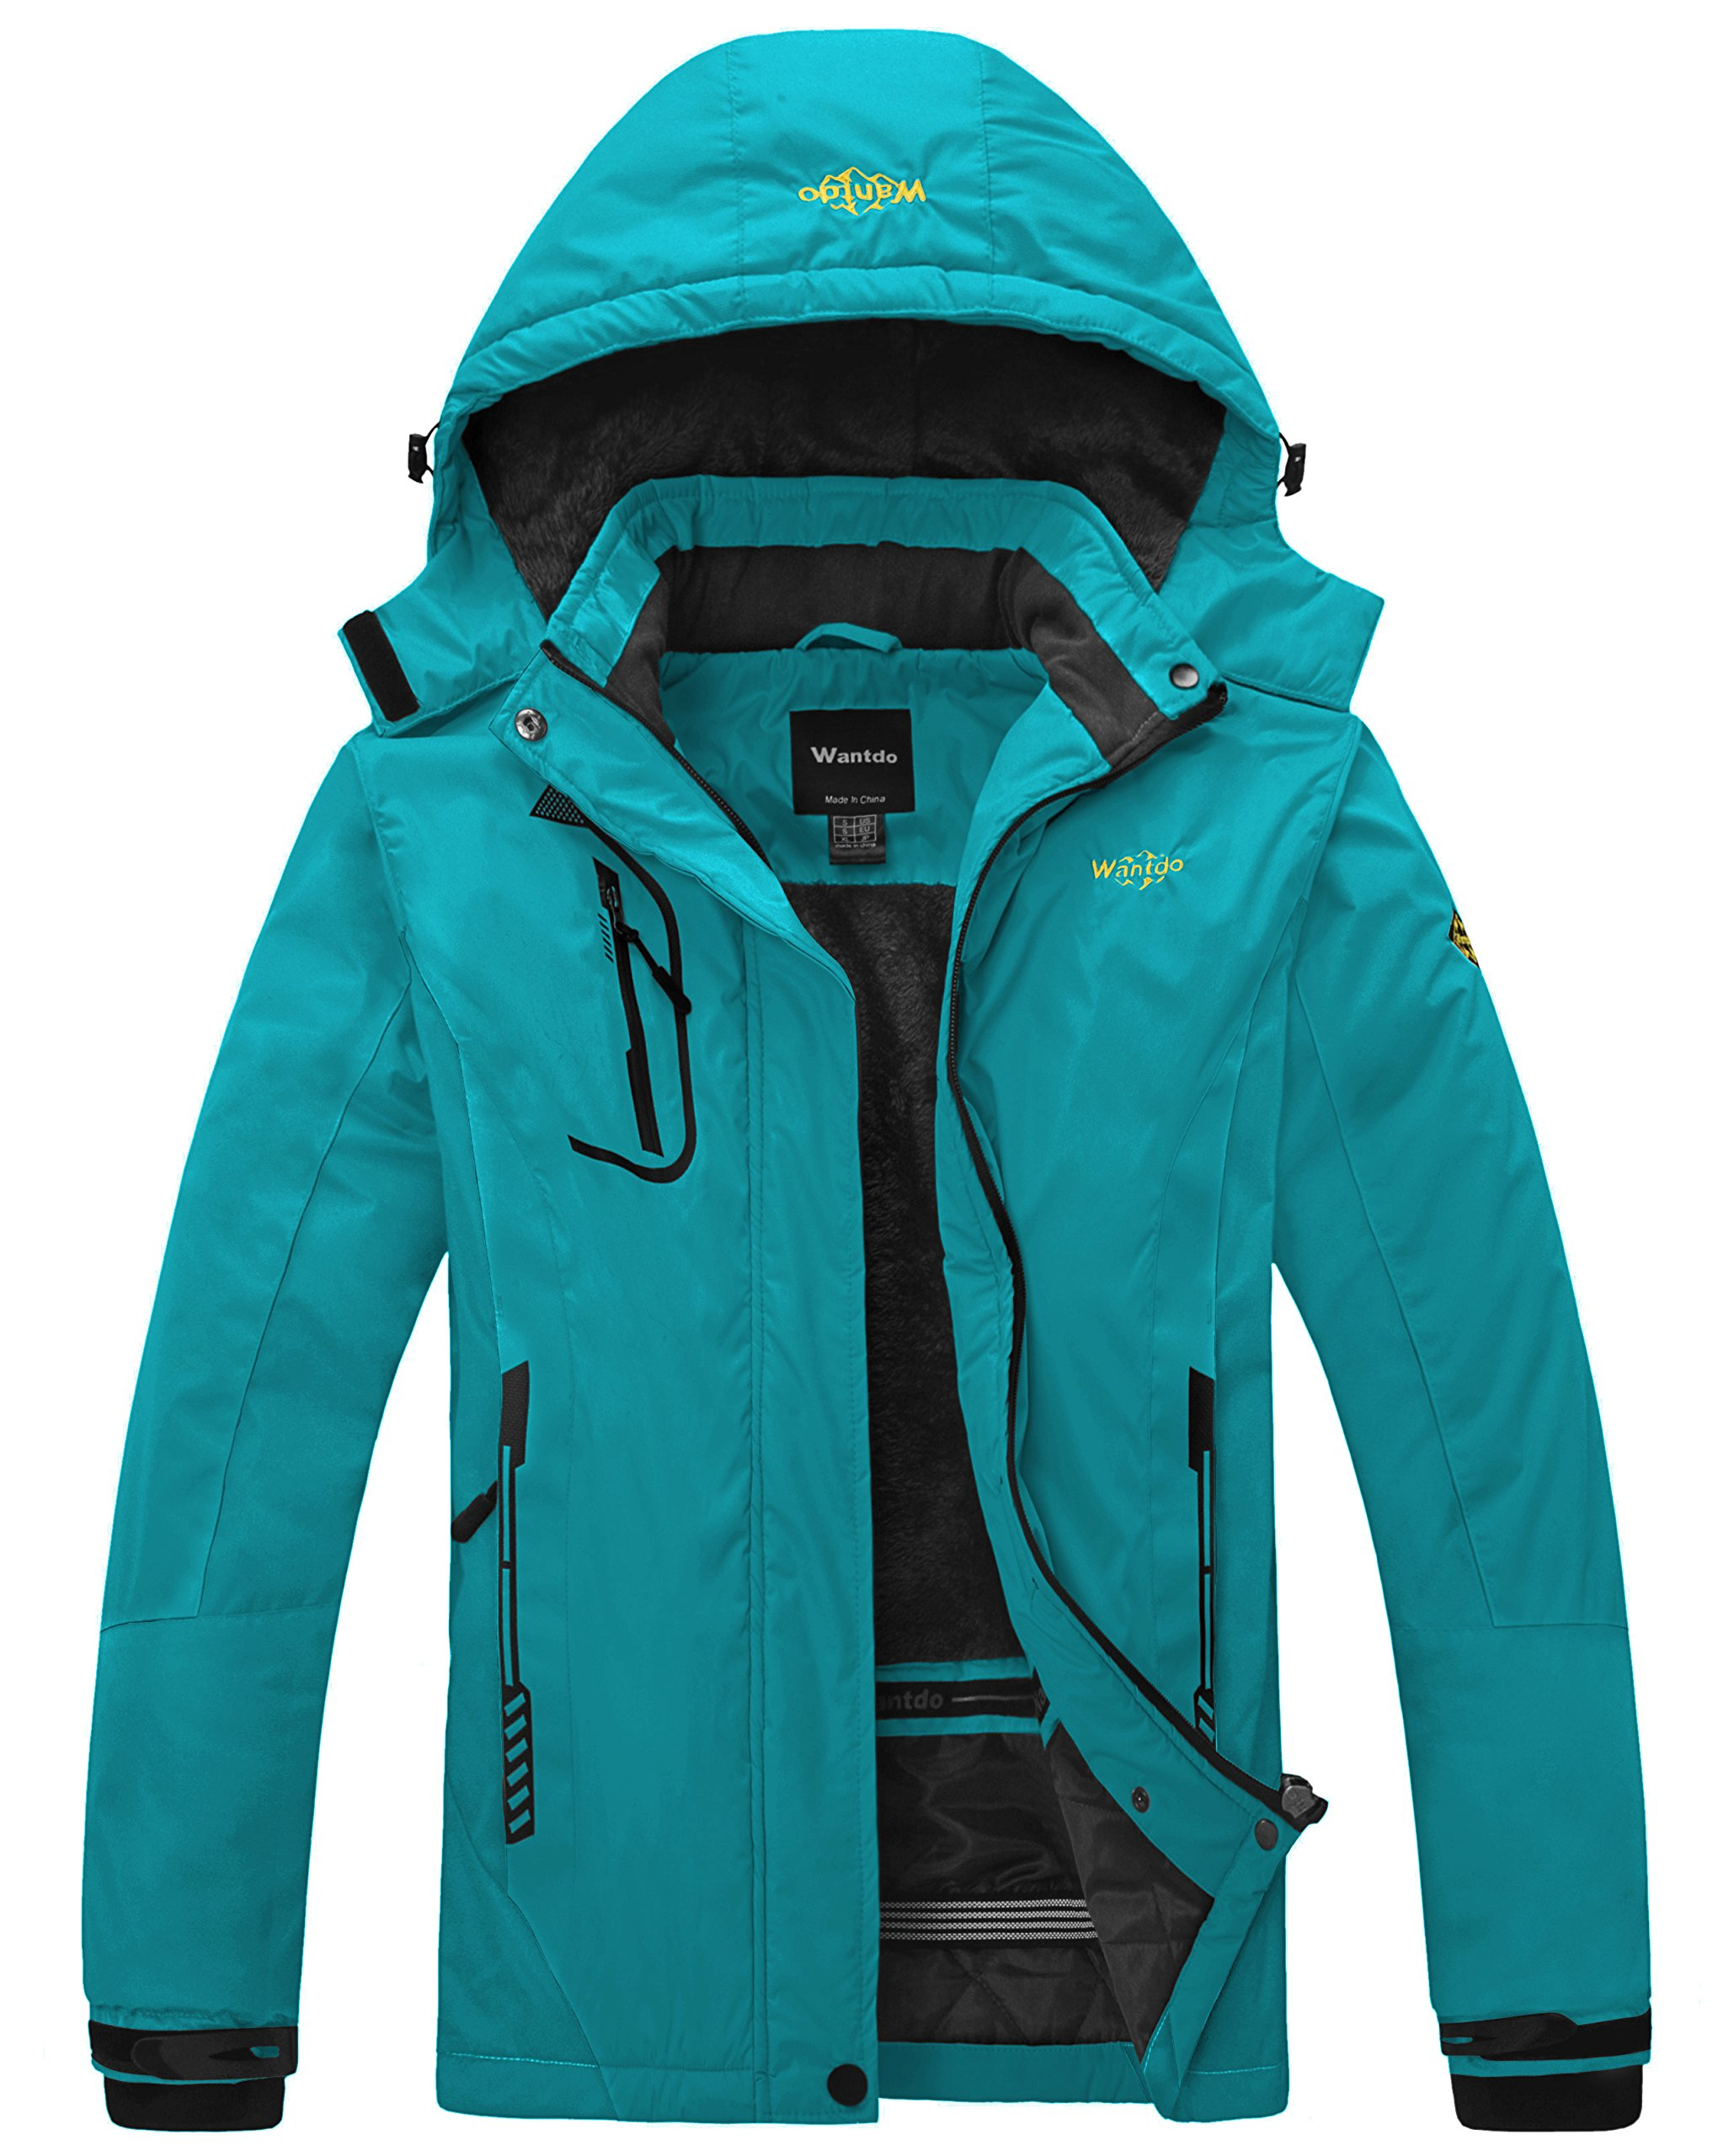 Wantdo Women's Waterproof Mountain Jacket Fleece Windproof Ski Jacket Hooded Jacket Blue Green Medium by Wantdo